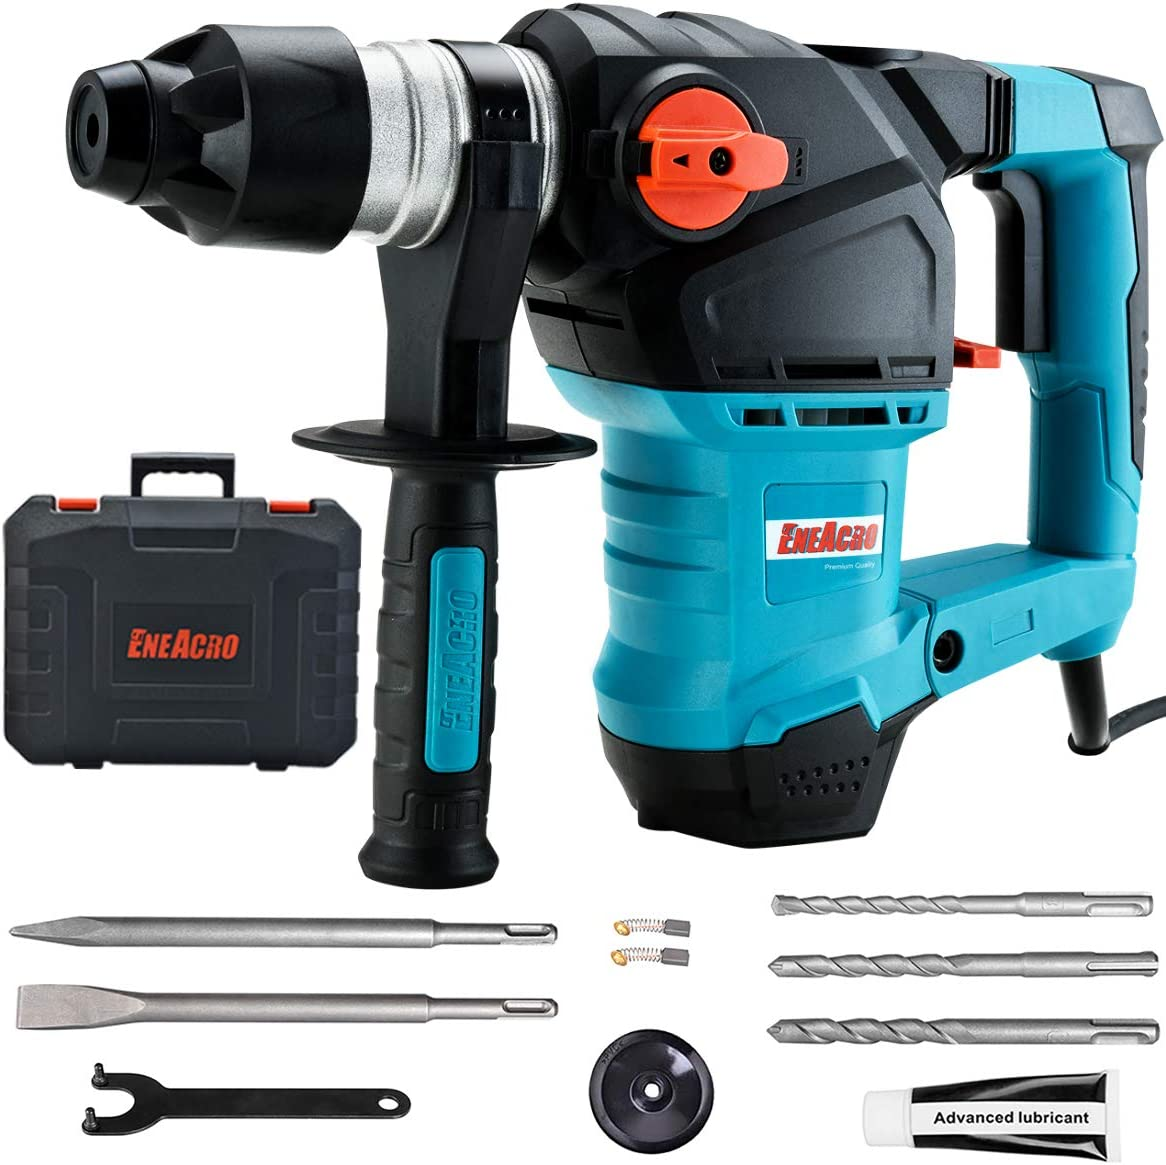 ENEACRO 1-1 4 Inch SDS-Plus 12.5 Amp Heavy Duty Rotary Hammer Drill, Safety Clutch 3 Functions with Vibration Control Including Grease, Chisels and Drill Bits with Case